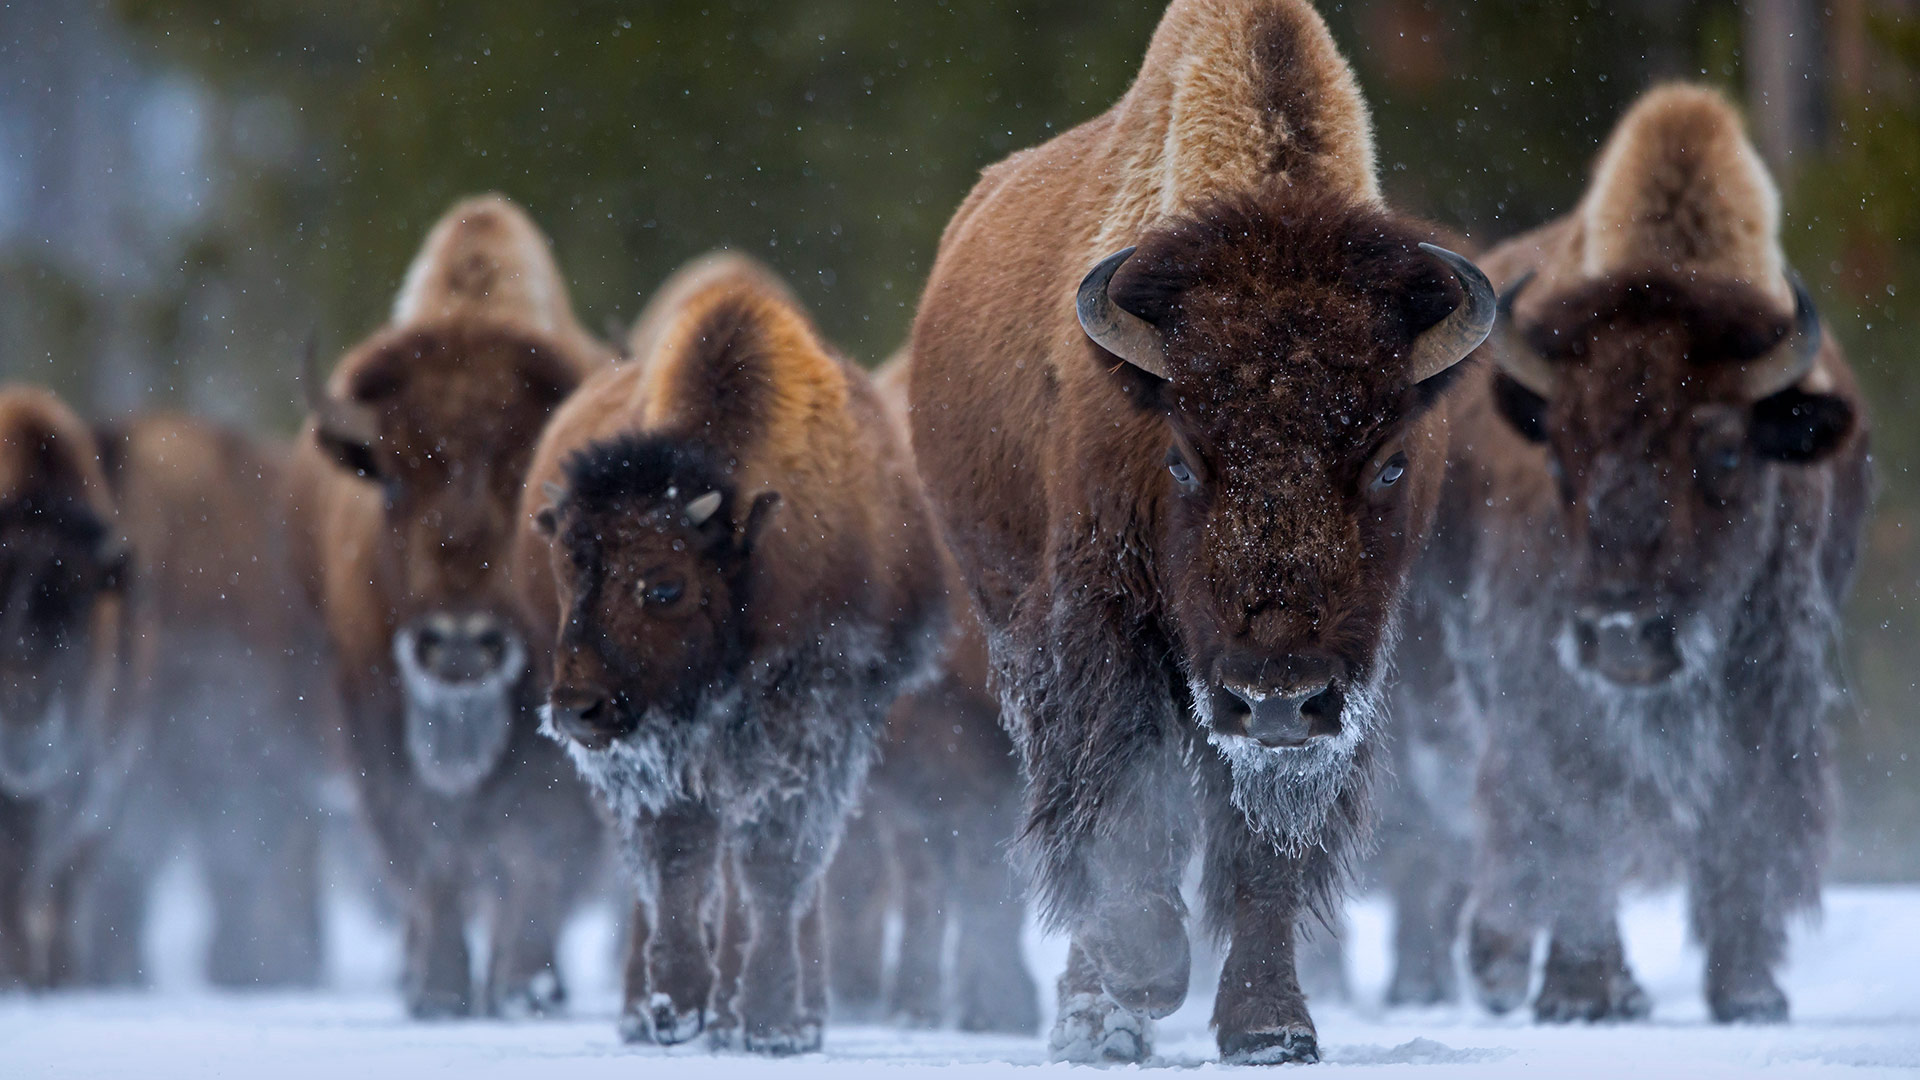 Bison at Yellowstone National Park, Wyoming (© Danny Green/Minden Pictures)(Bing United States)